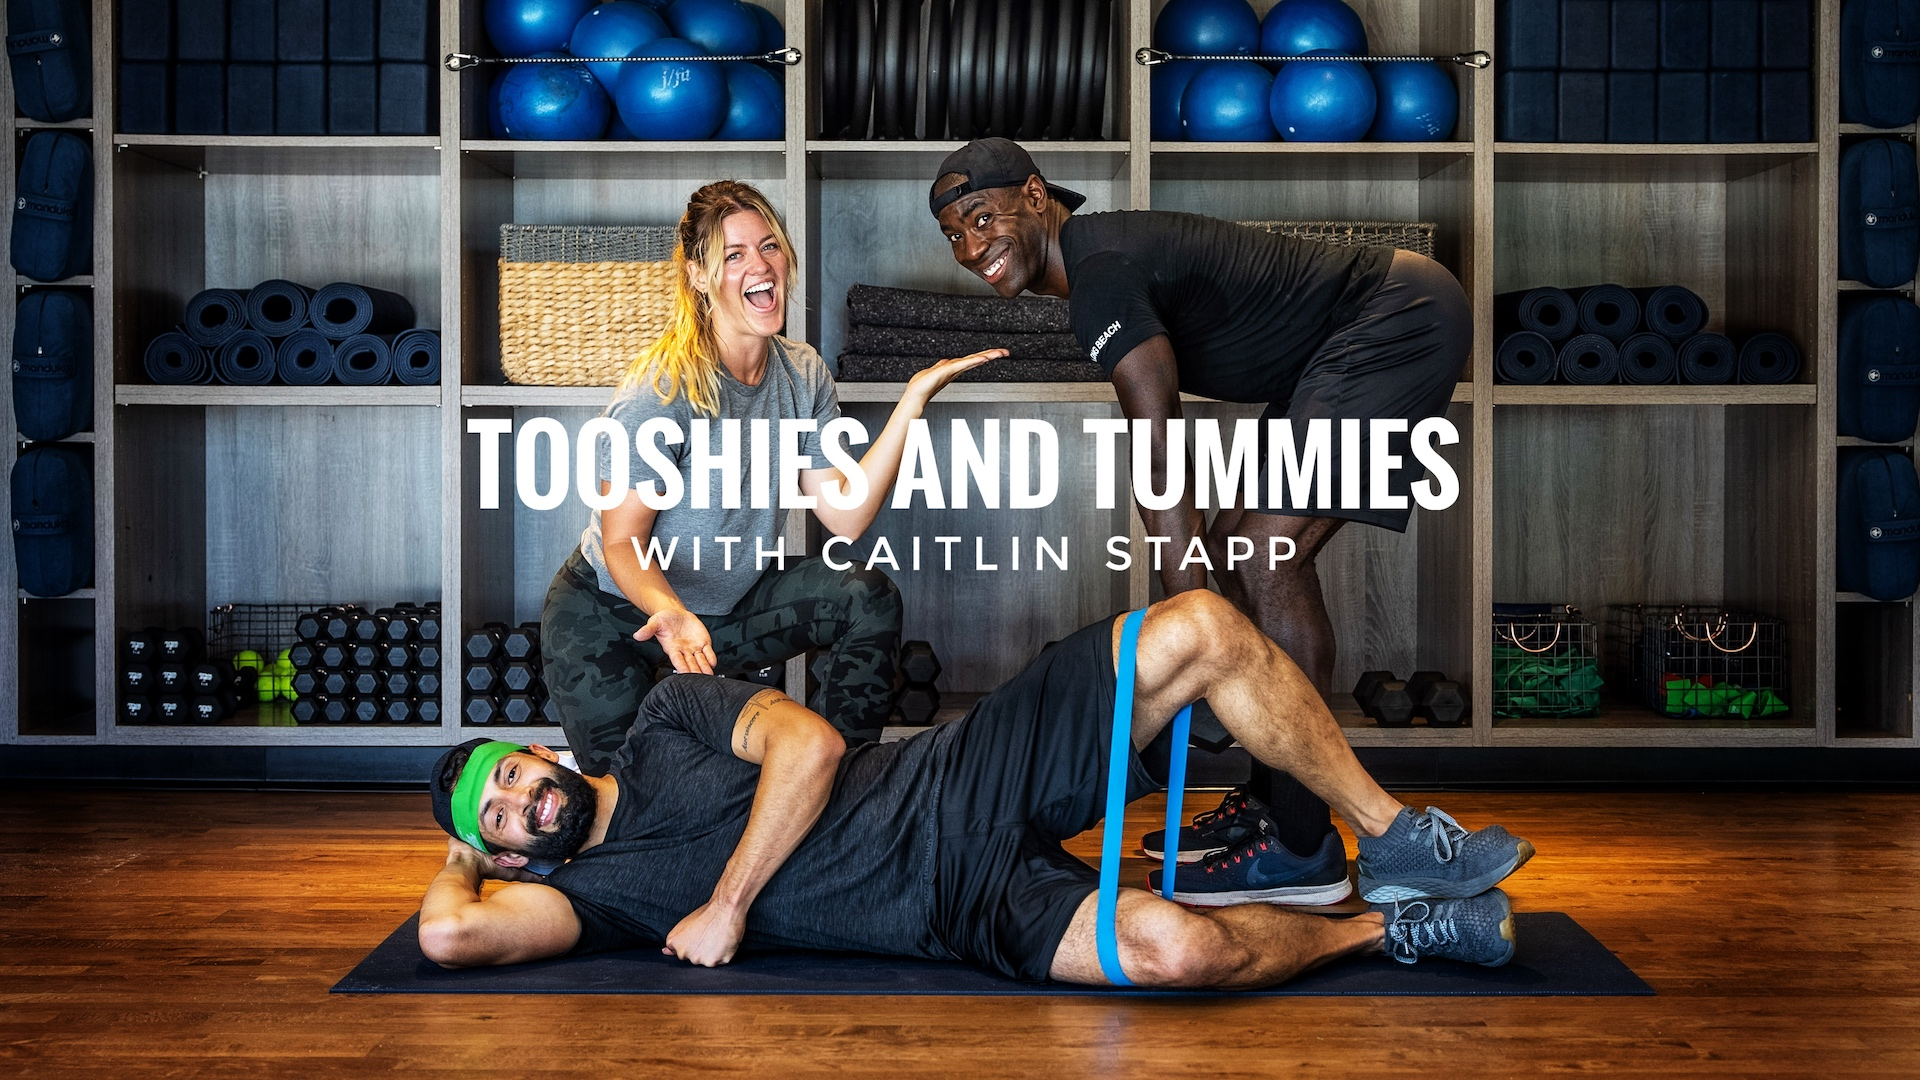 Tooshies and Tummies with Caitlin Stapp